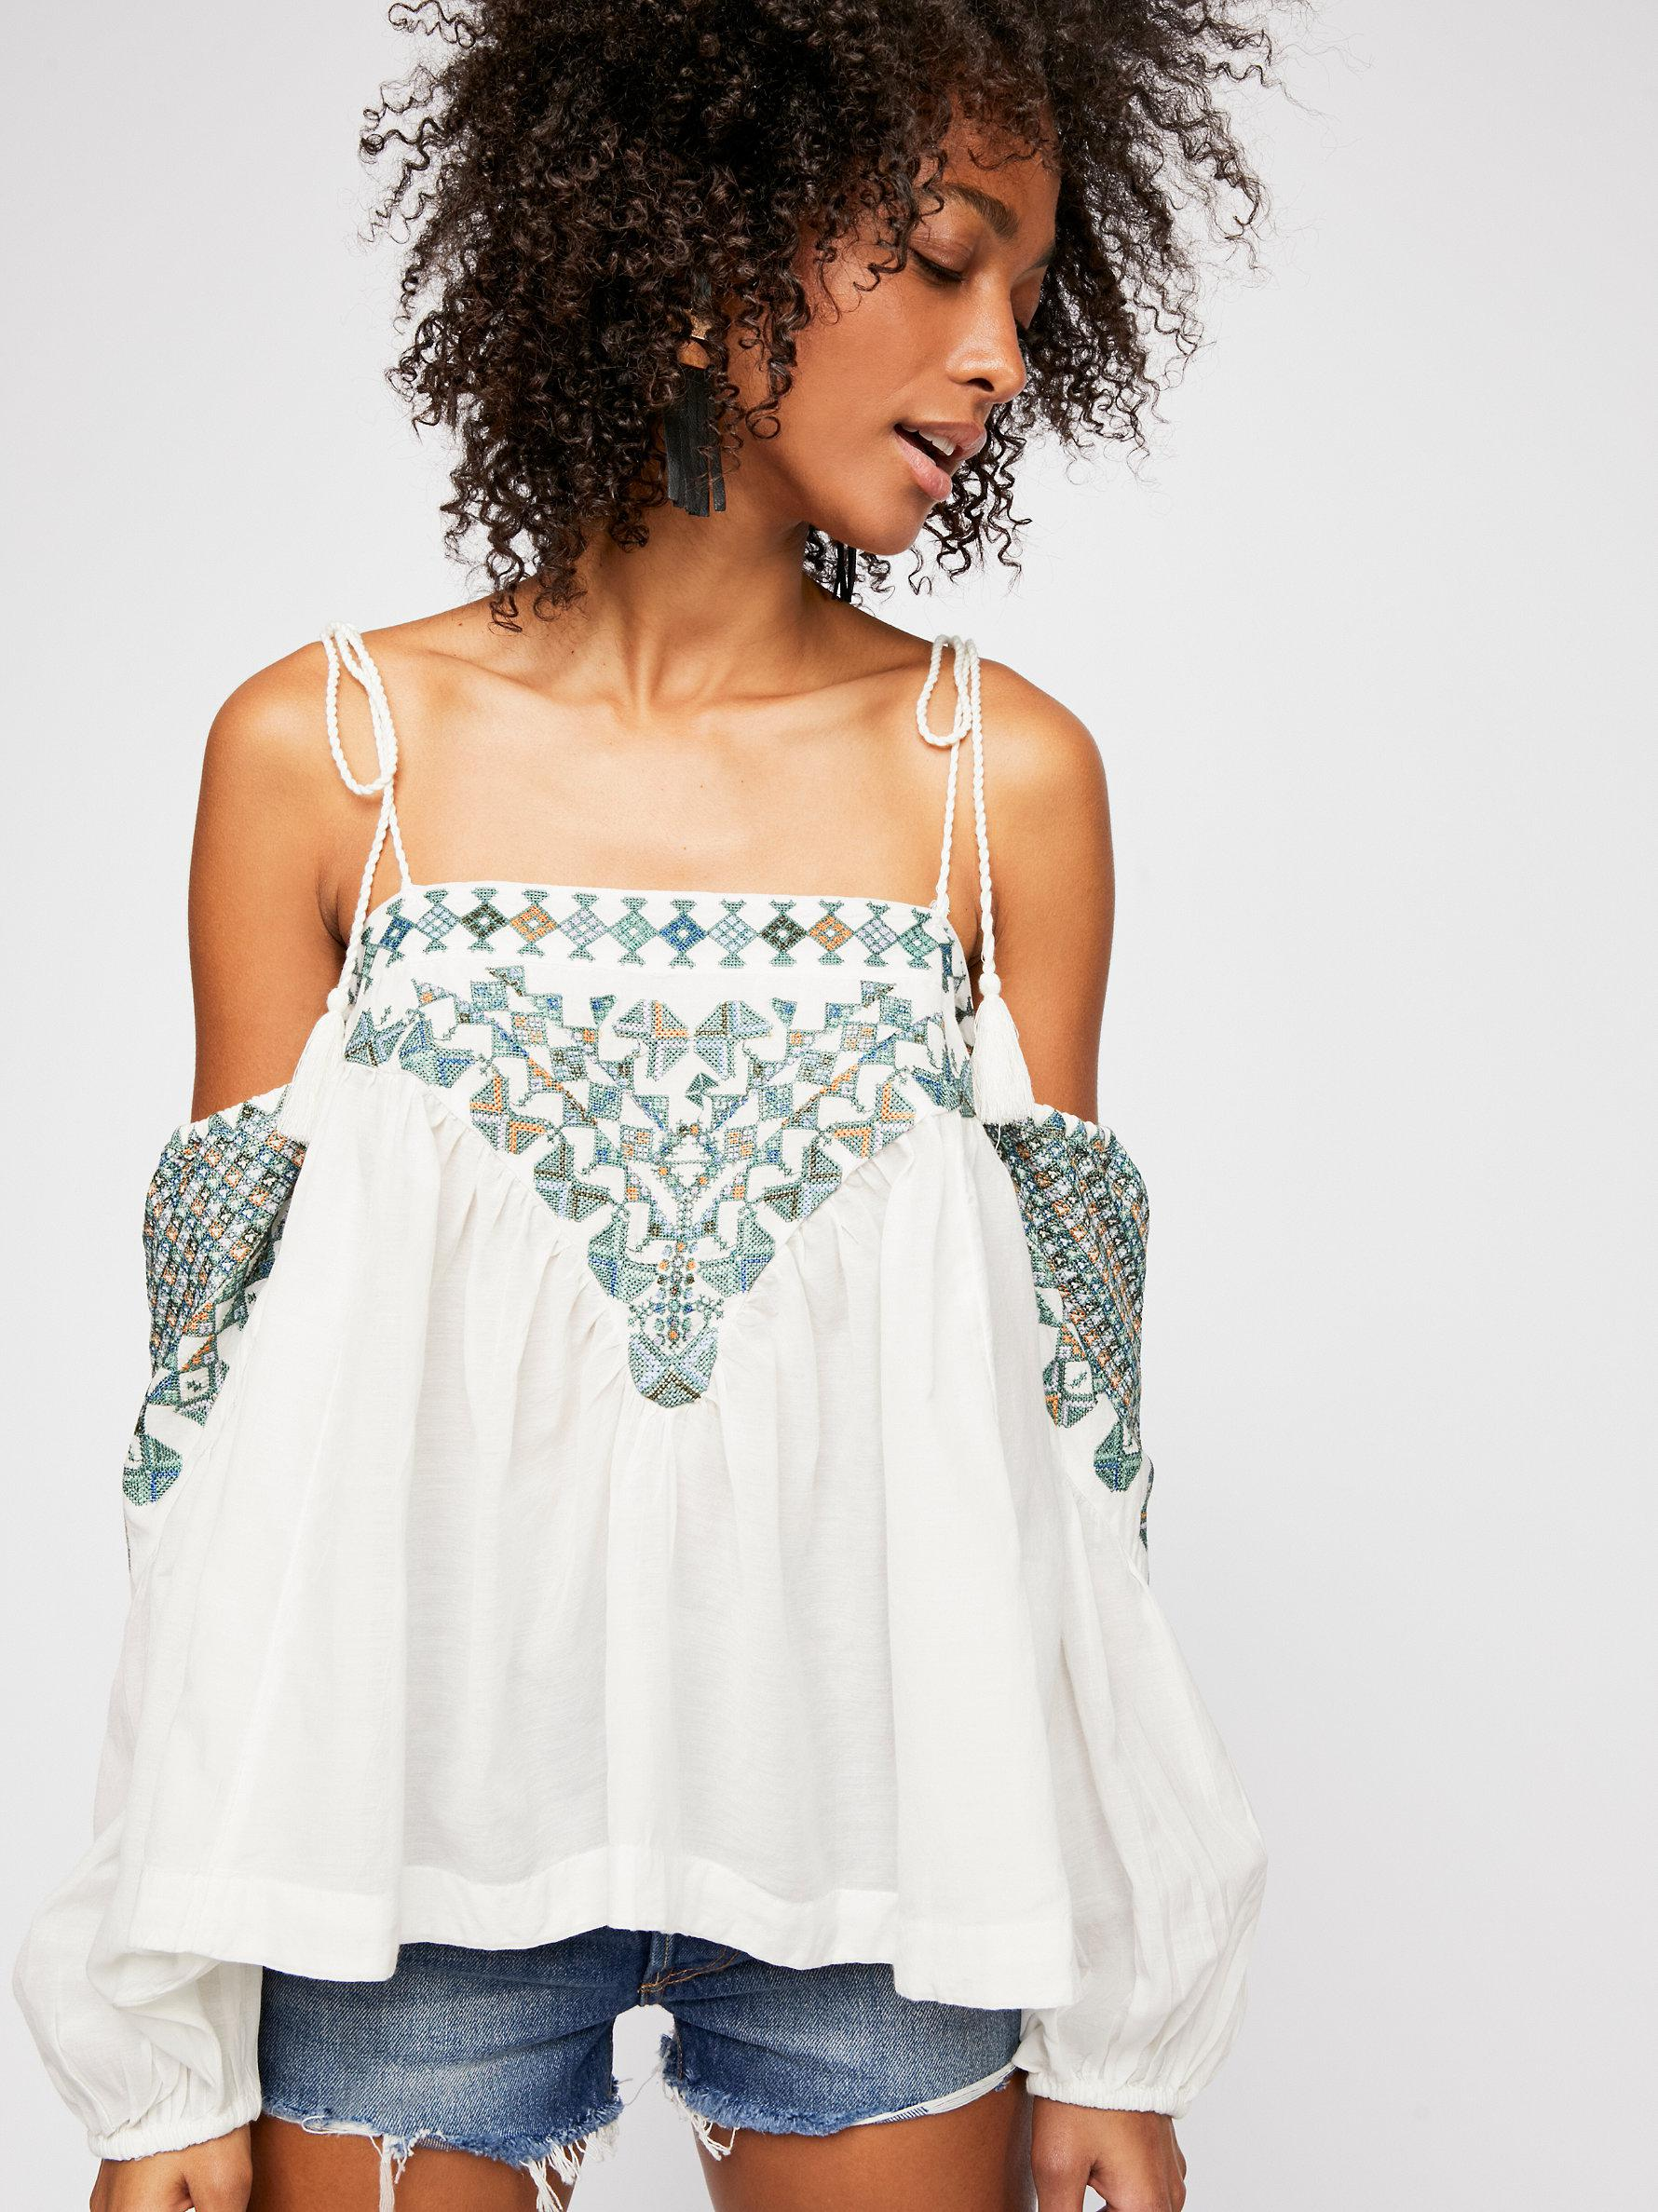 8695334c33400 Lyst - Free People Vacay Vibin Top in White